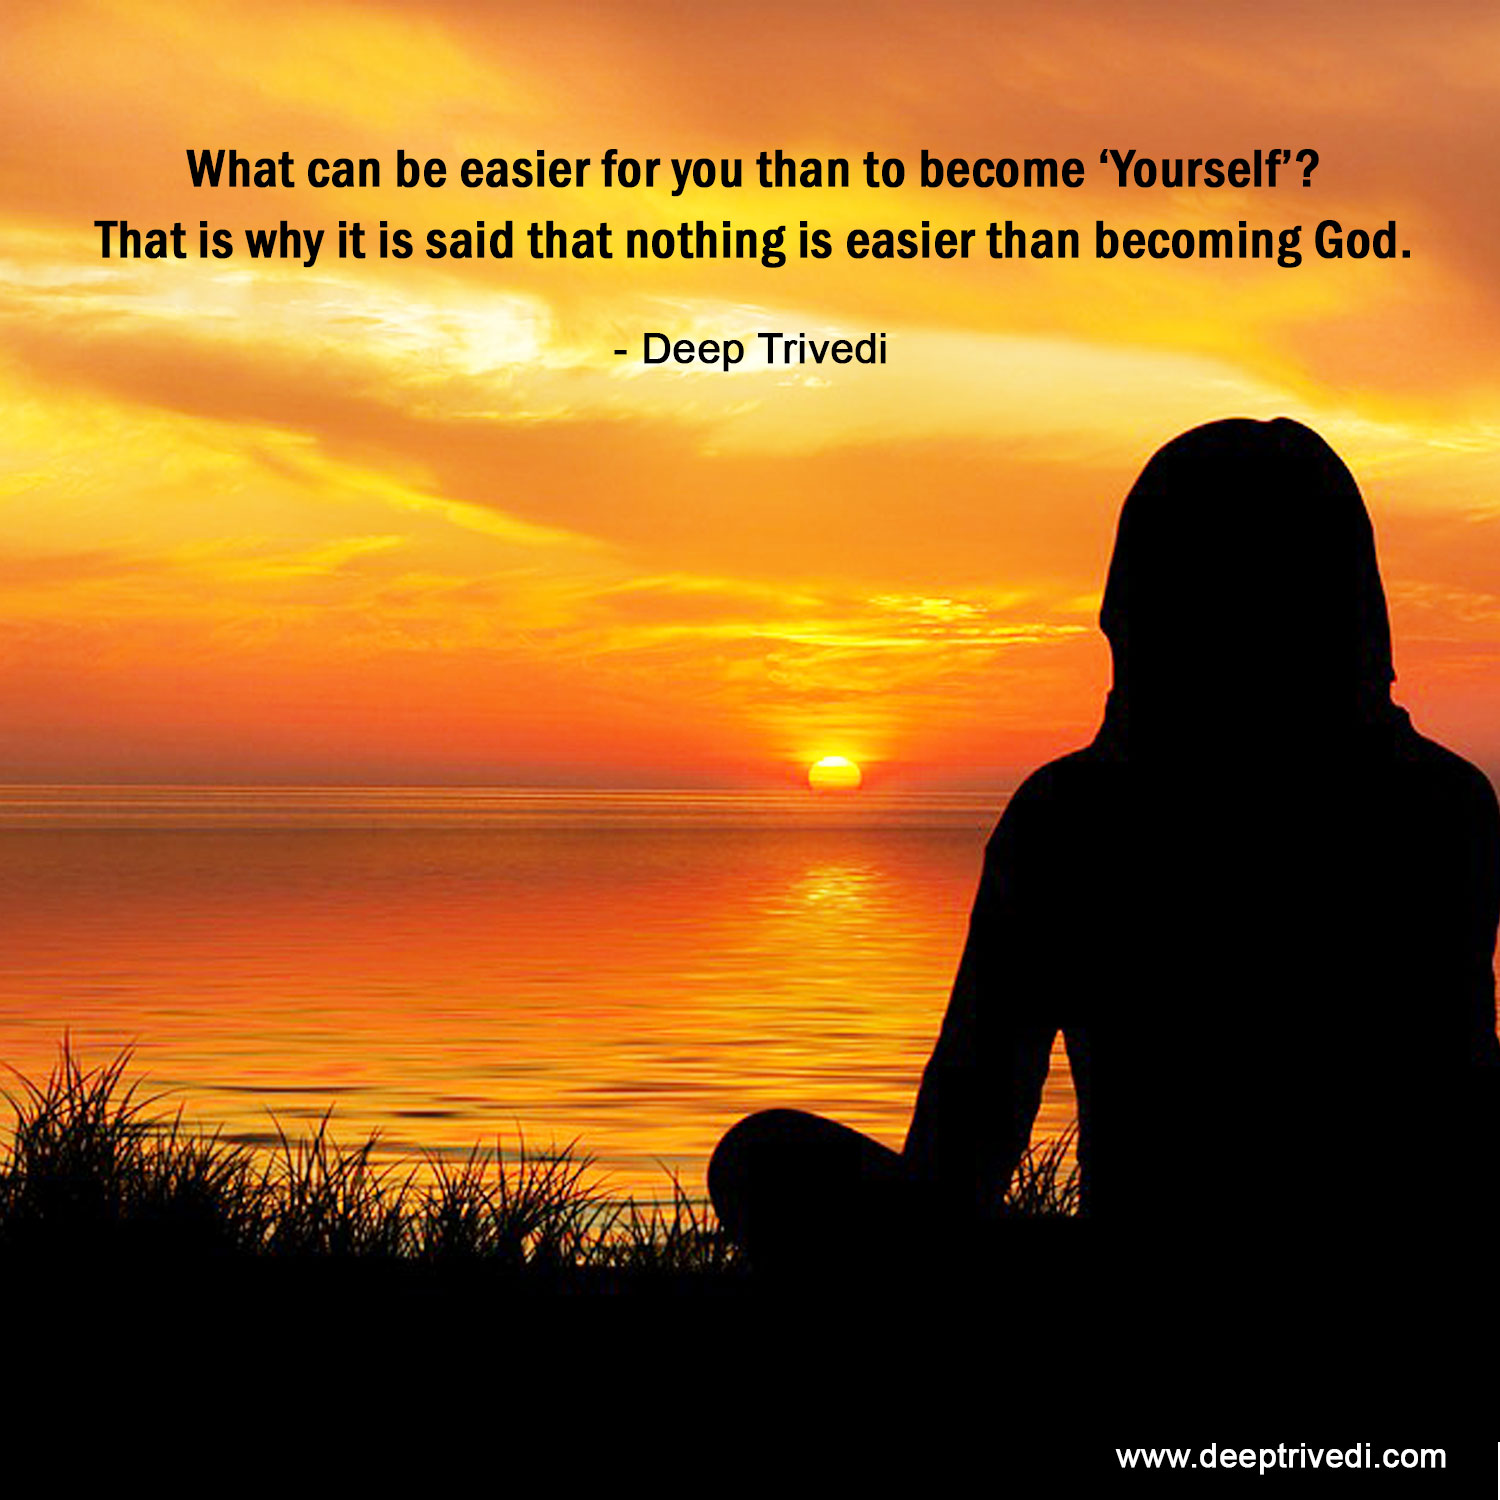 What can be easier for you...